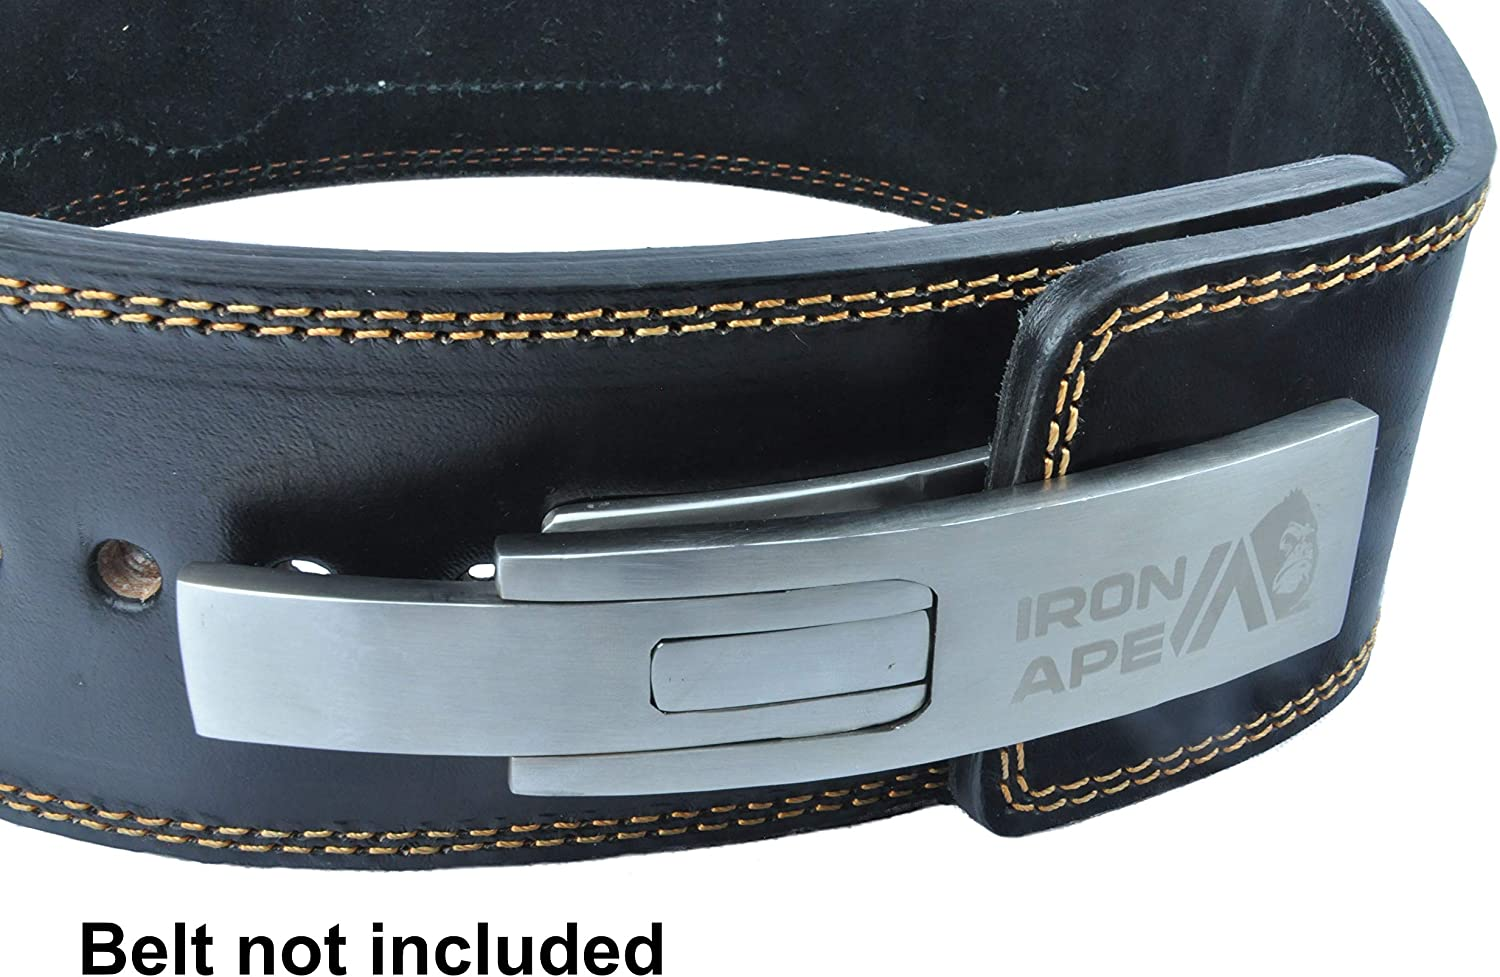 IRON TANKS LEVER BELT BUCKLE WEIGHTLIFTING POWERLIFTING S147 BRUSHED STEEL